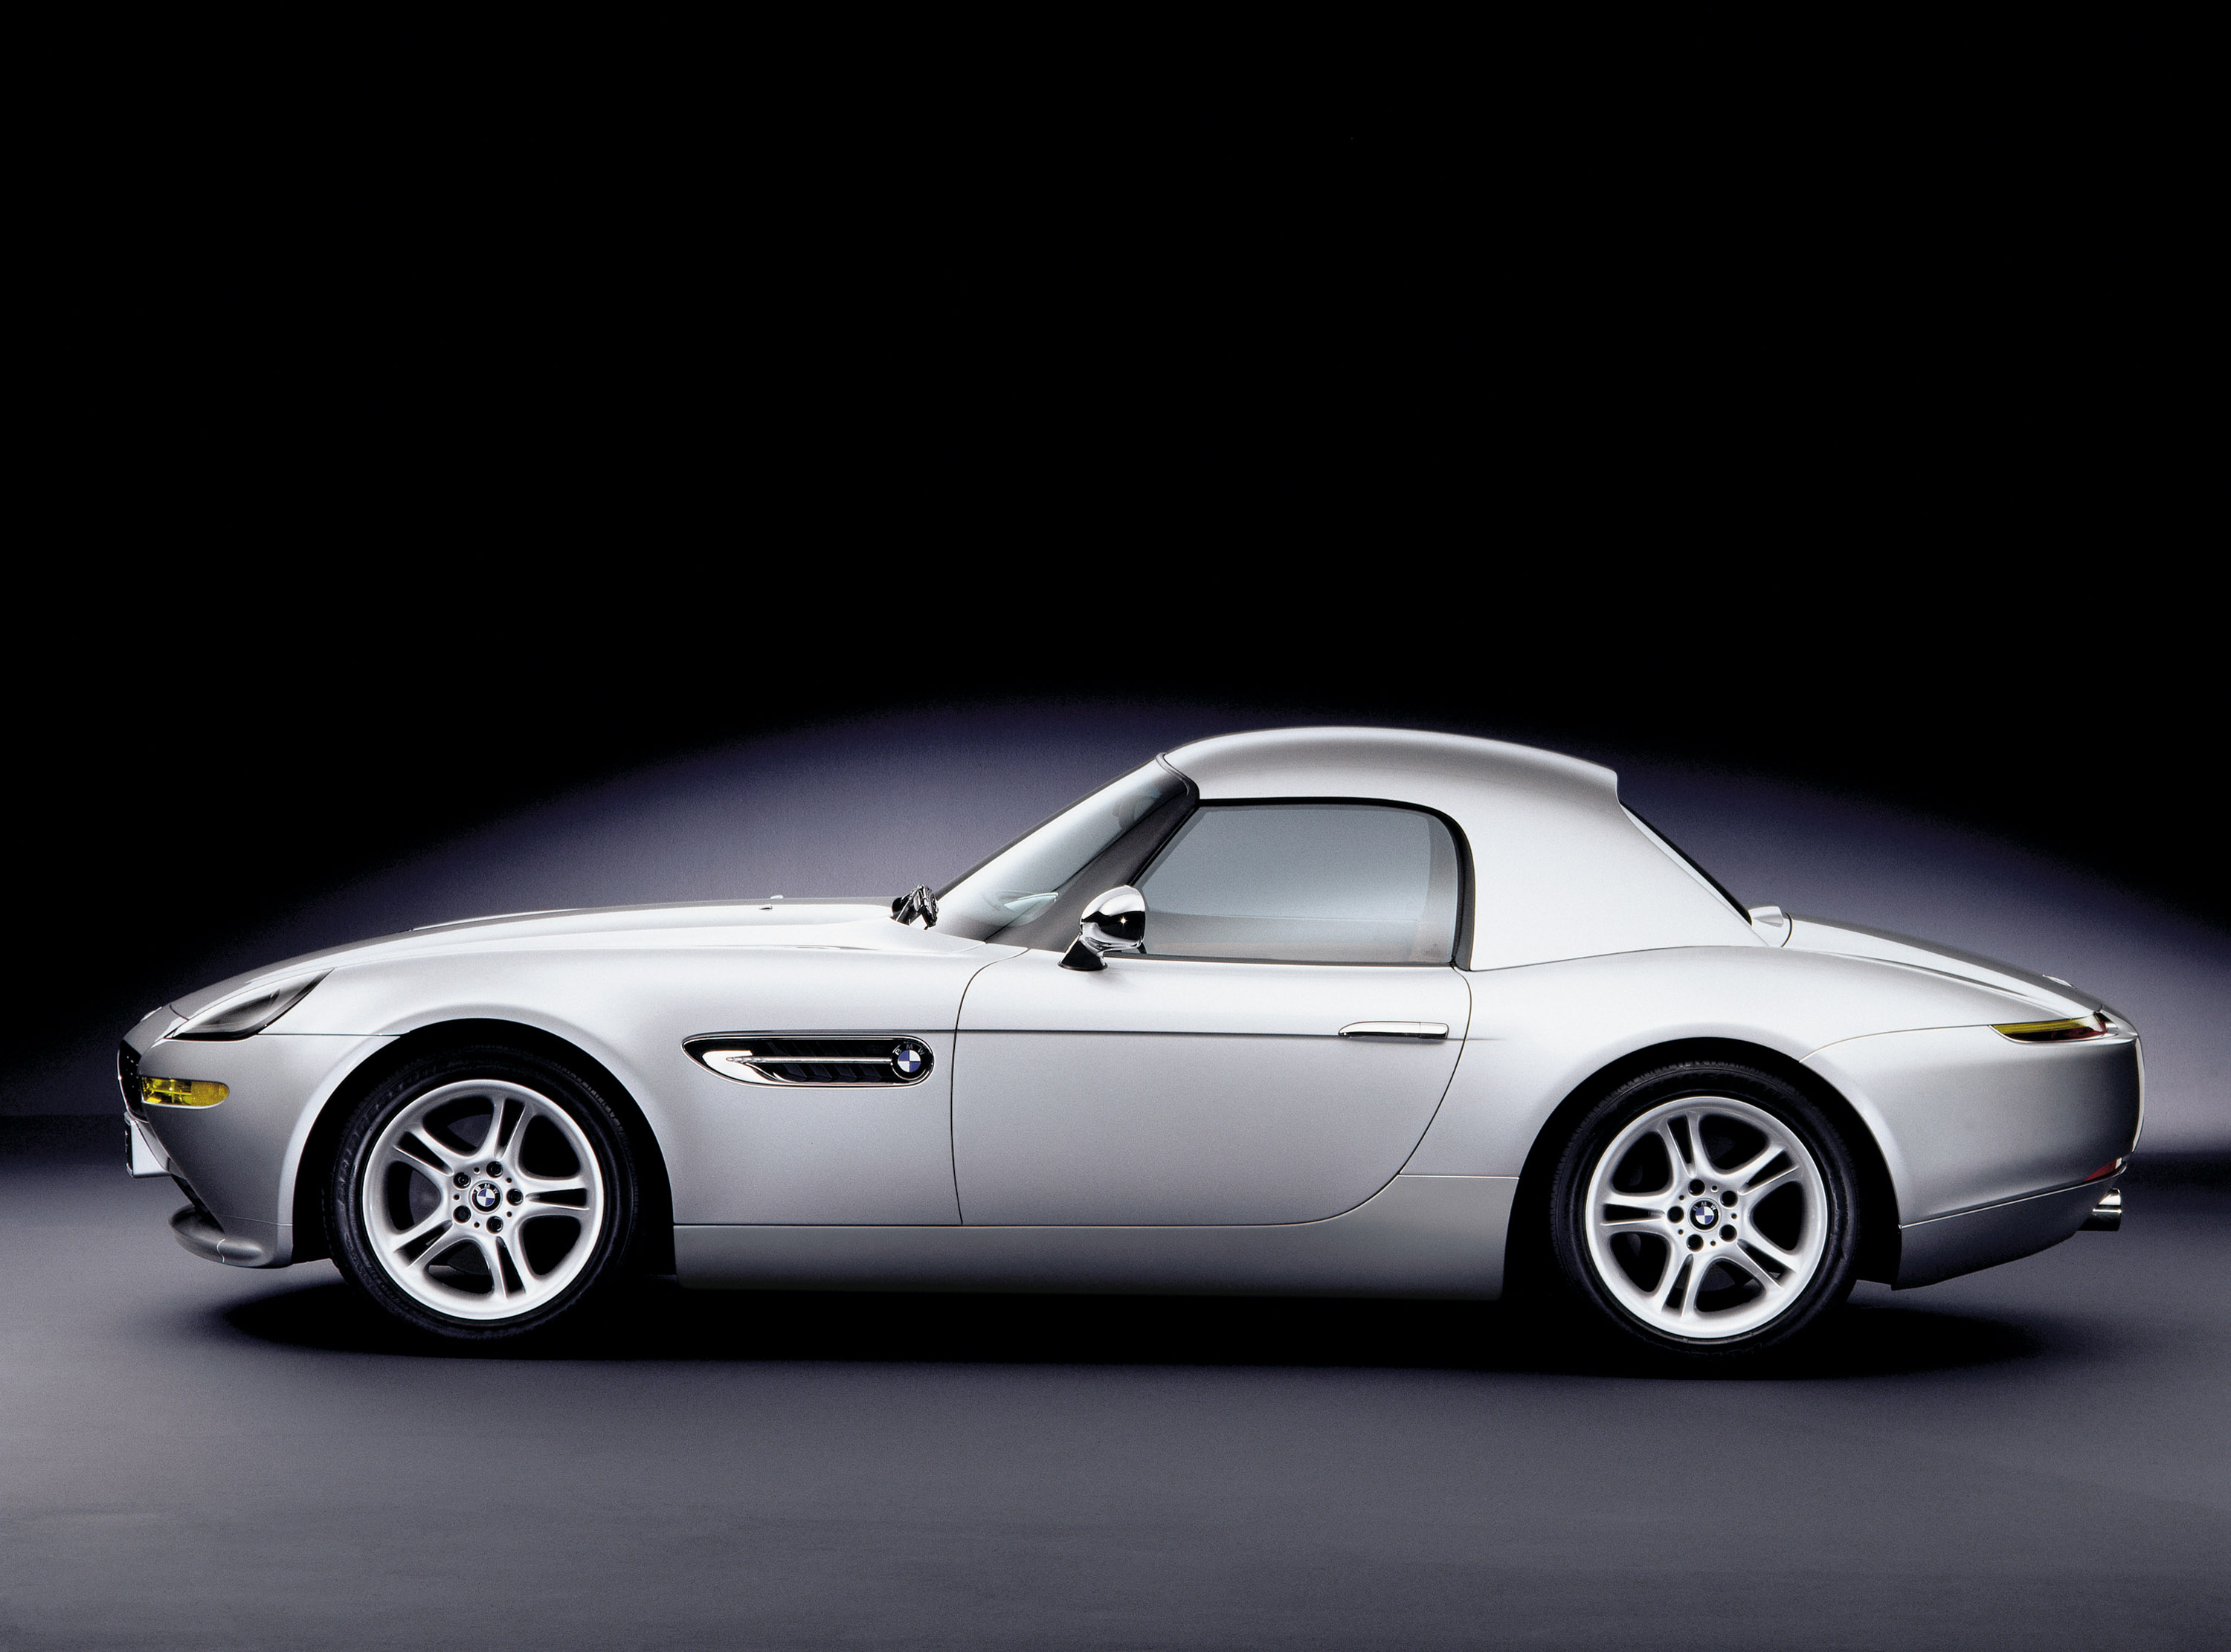 Michelin Pilot Sport >> BMW Z8 Roadster - Price €113,361